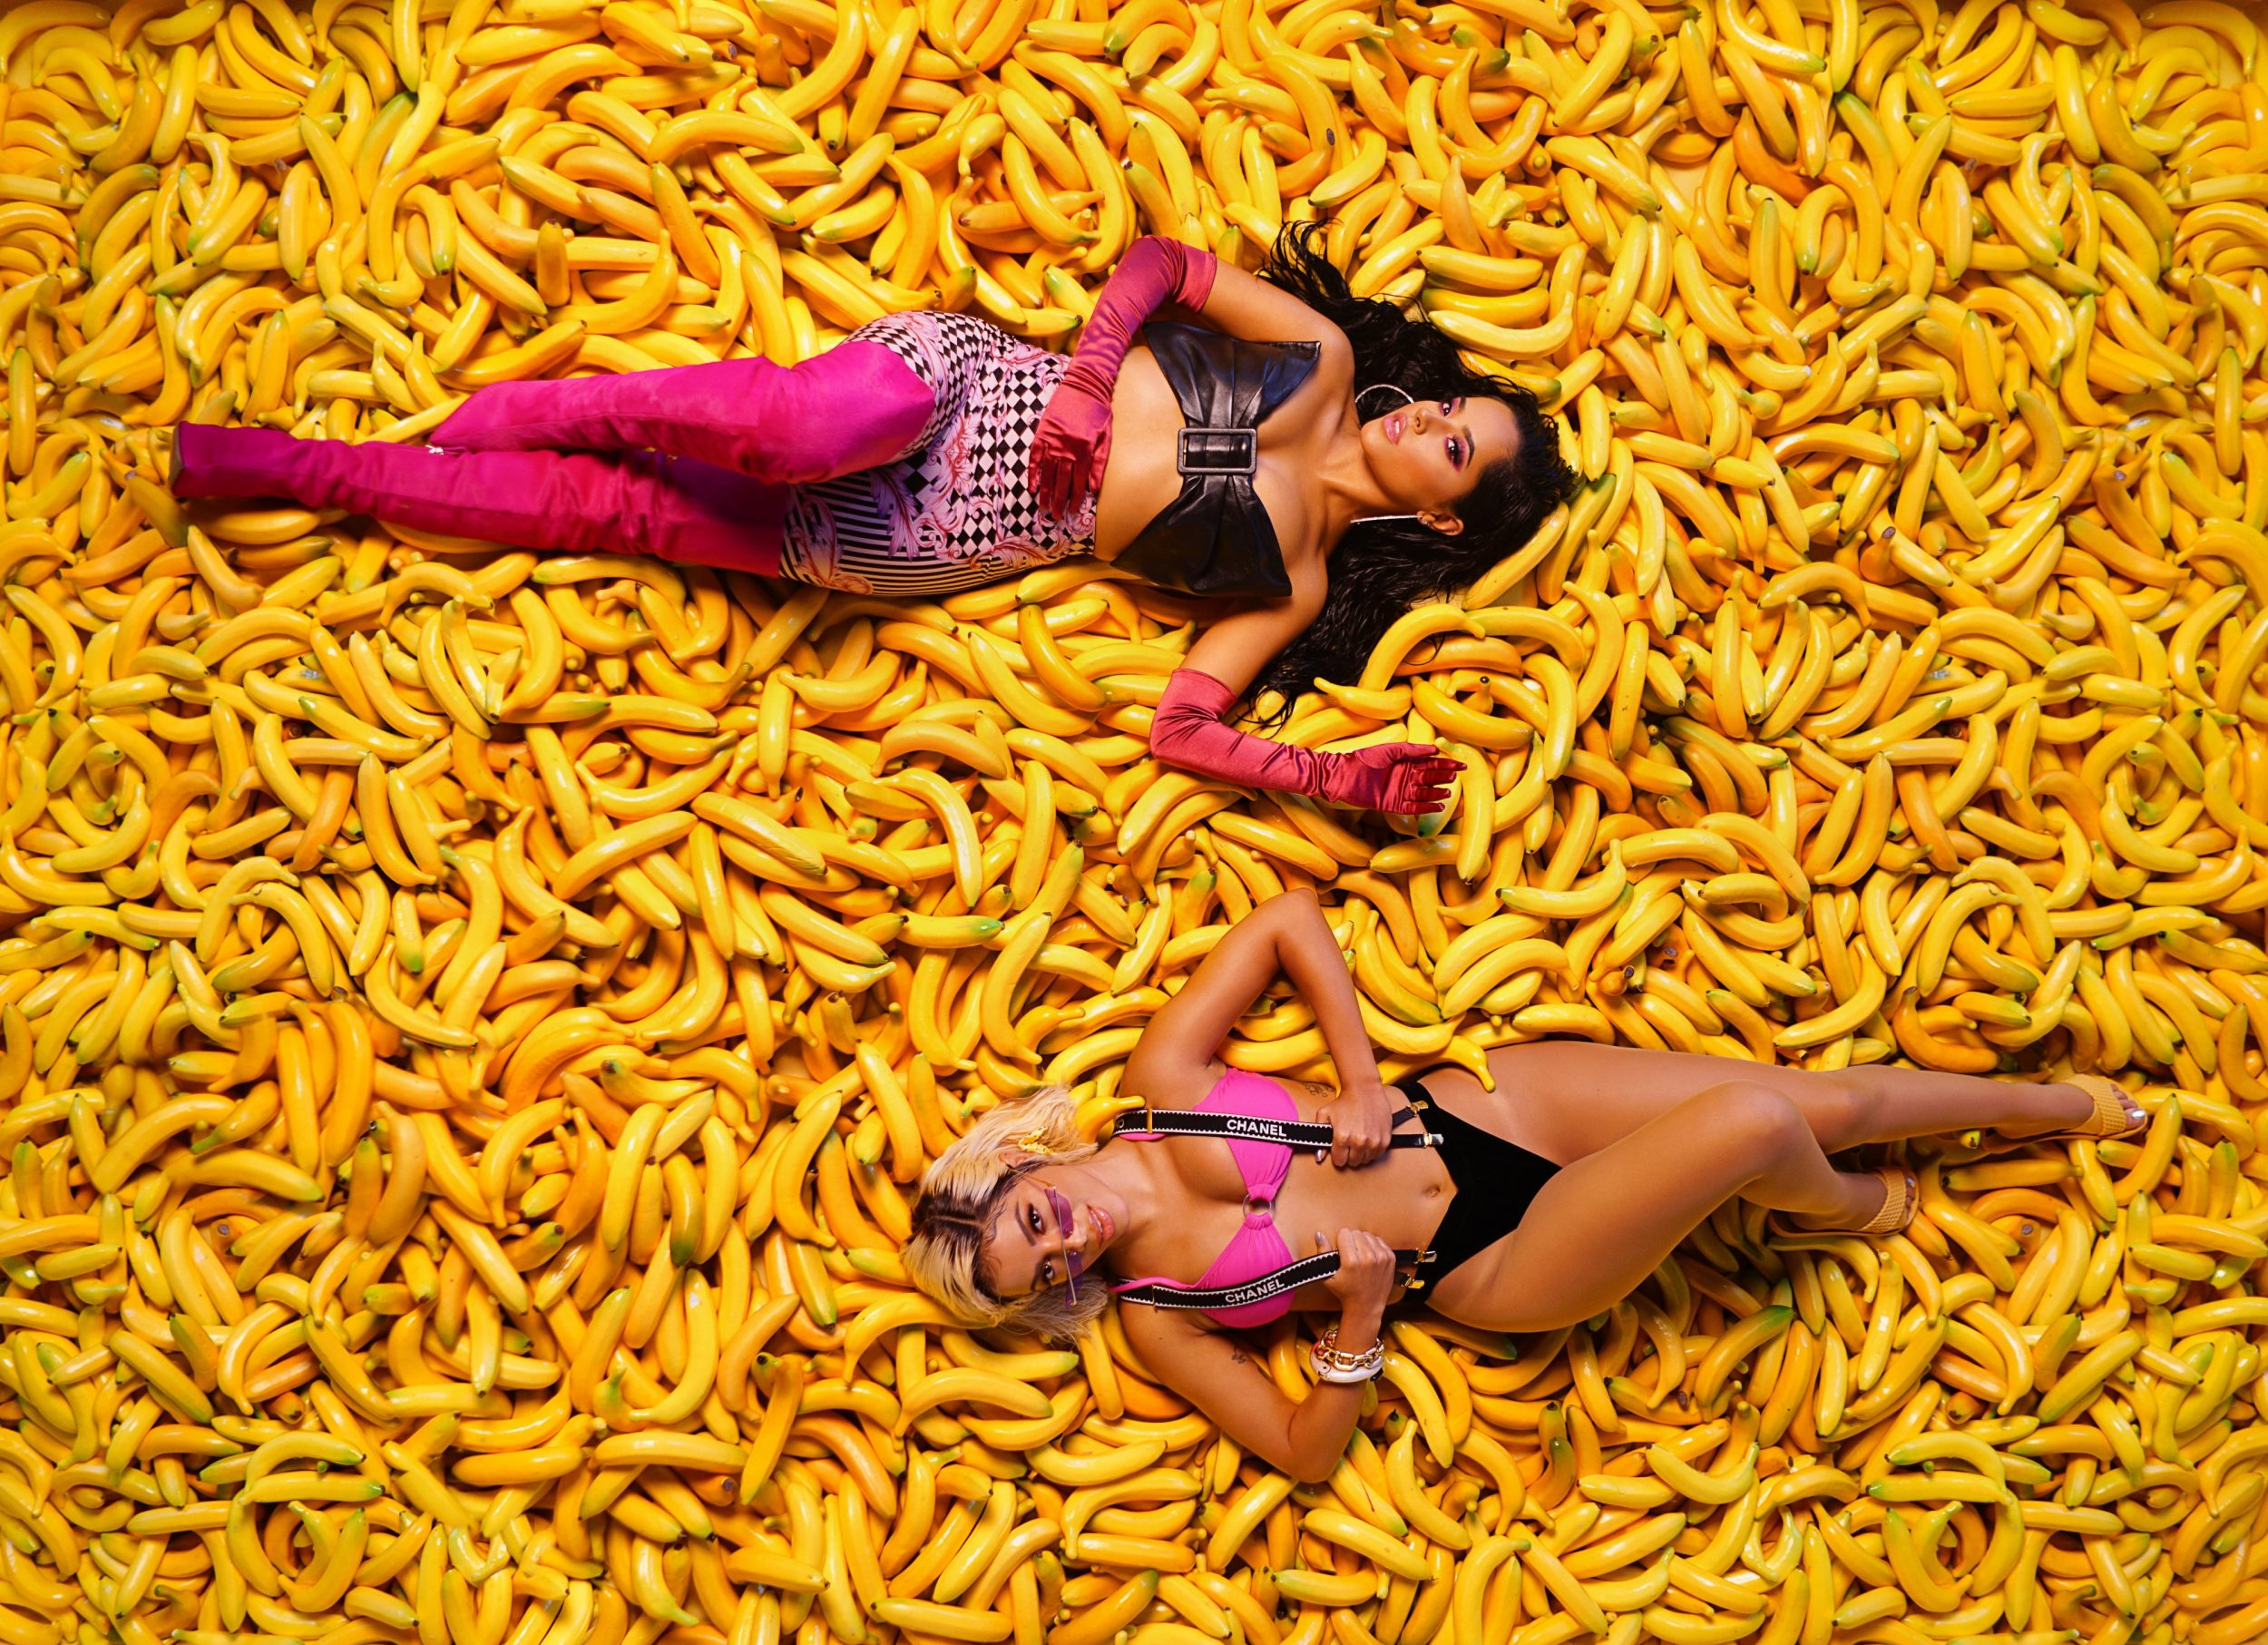 Anitta, Becky G Appear In Behind The Scenes Pictures From -7510